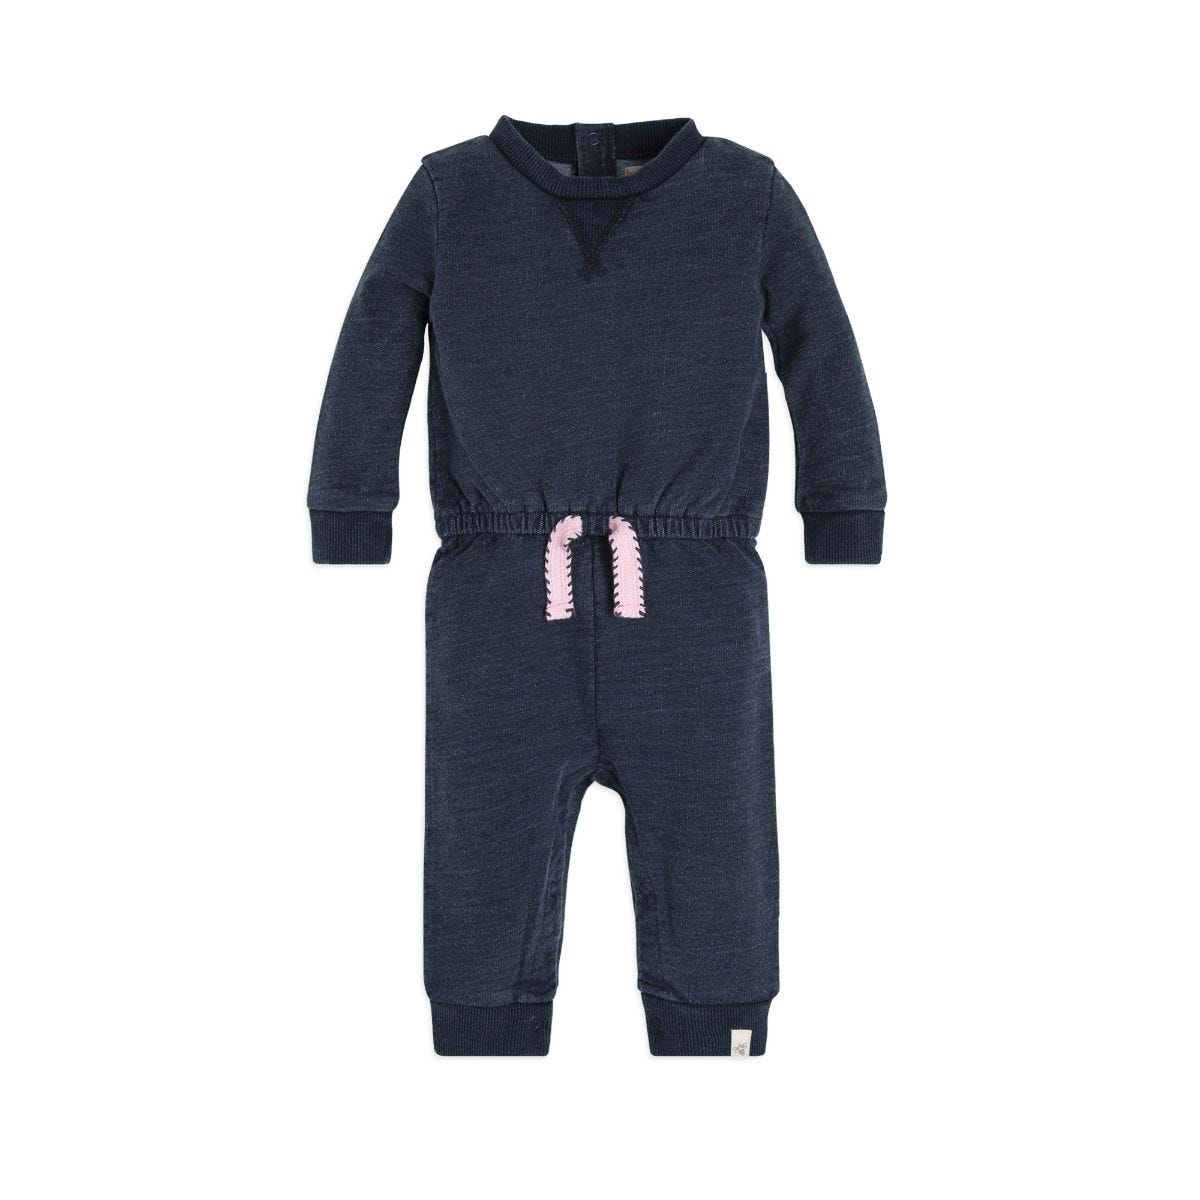 French Terry Denim Wash Organic Baby One Piece Jumpsuit